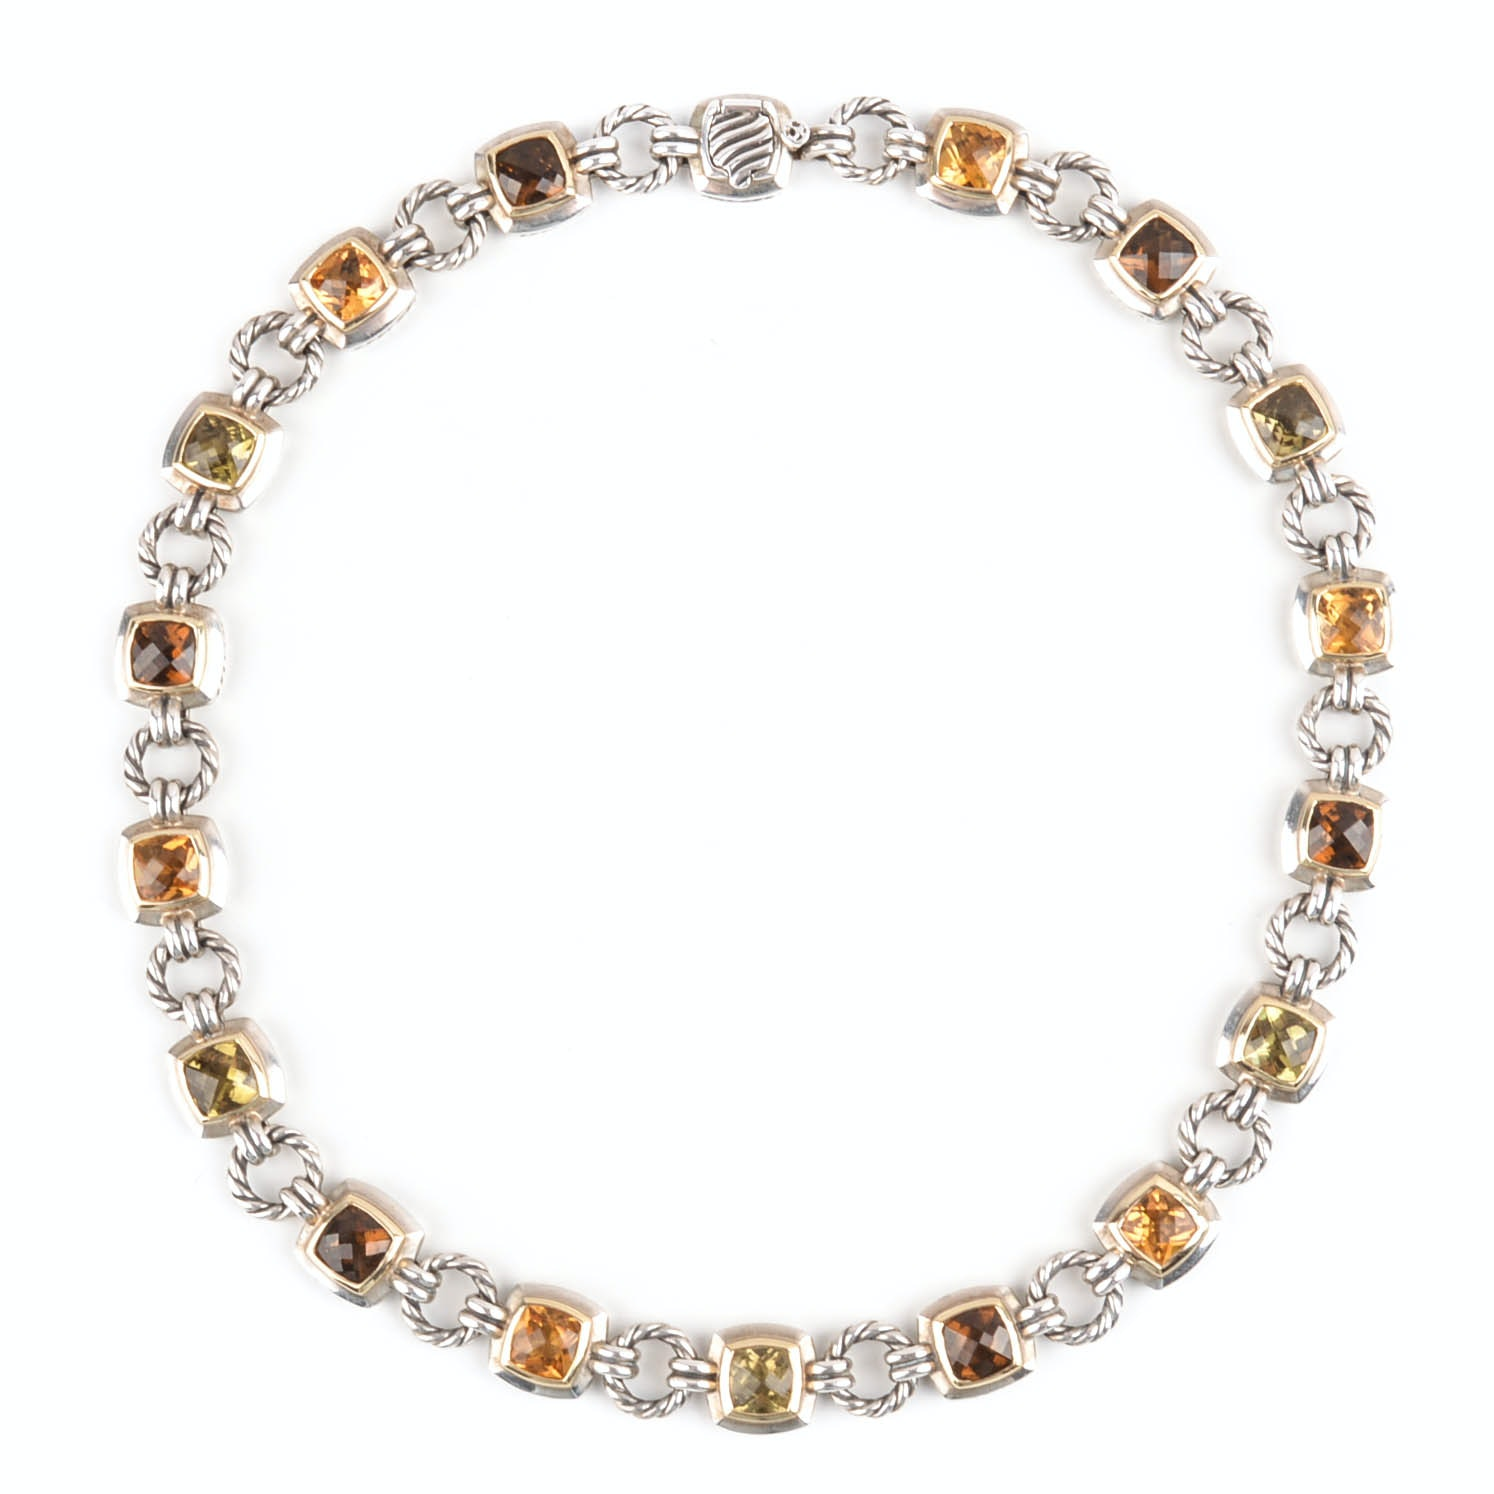 David Yurman Sterling Silver and 18K Yellow Gold Gemstone Necklace